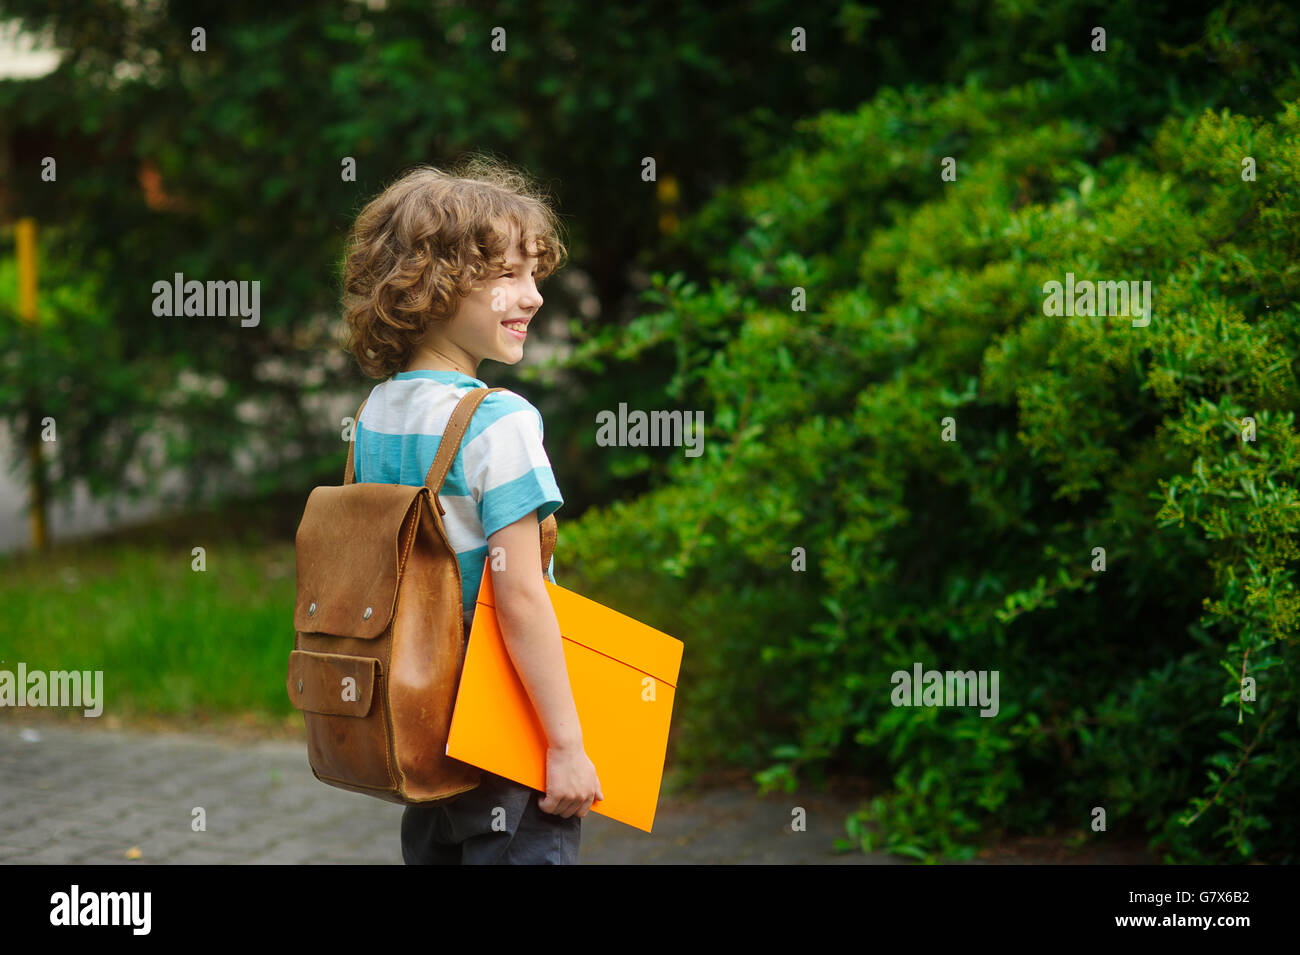 Chappy on a schoolyard. The school student stand in a half-turn to the camera. He looks in a distance and smiles. - Stock Image